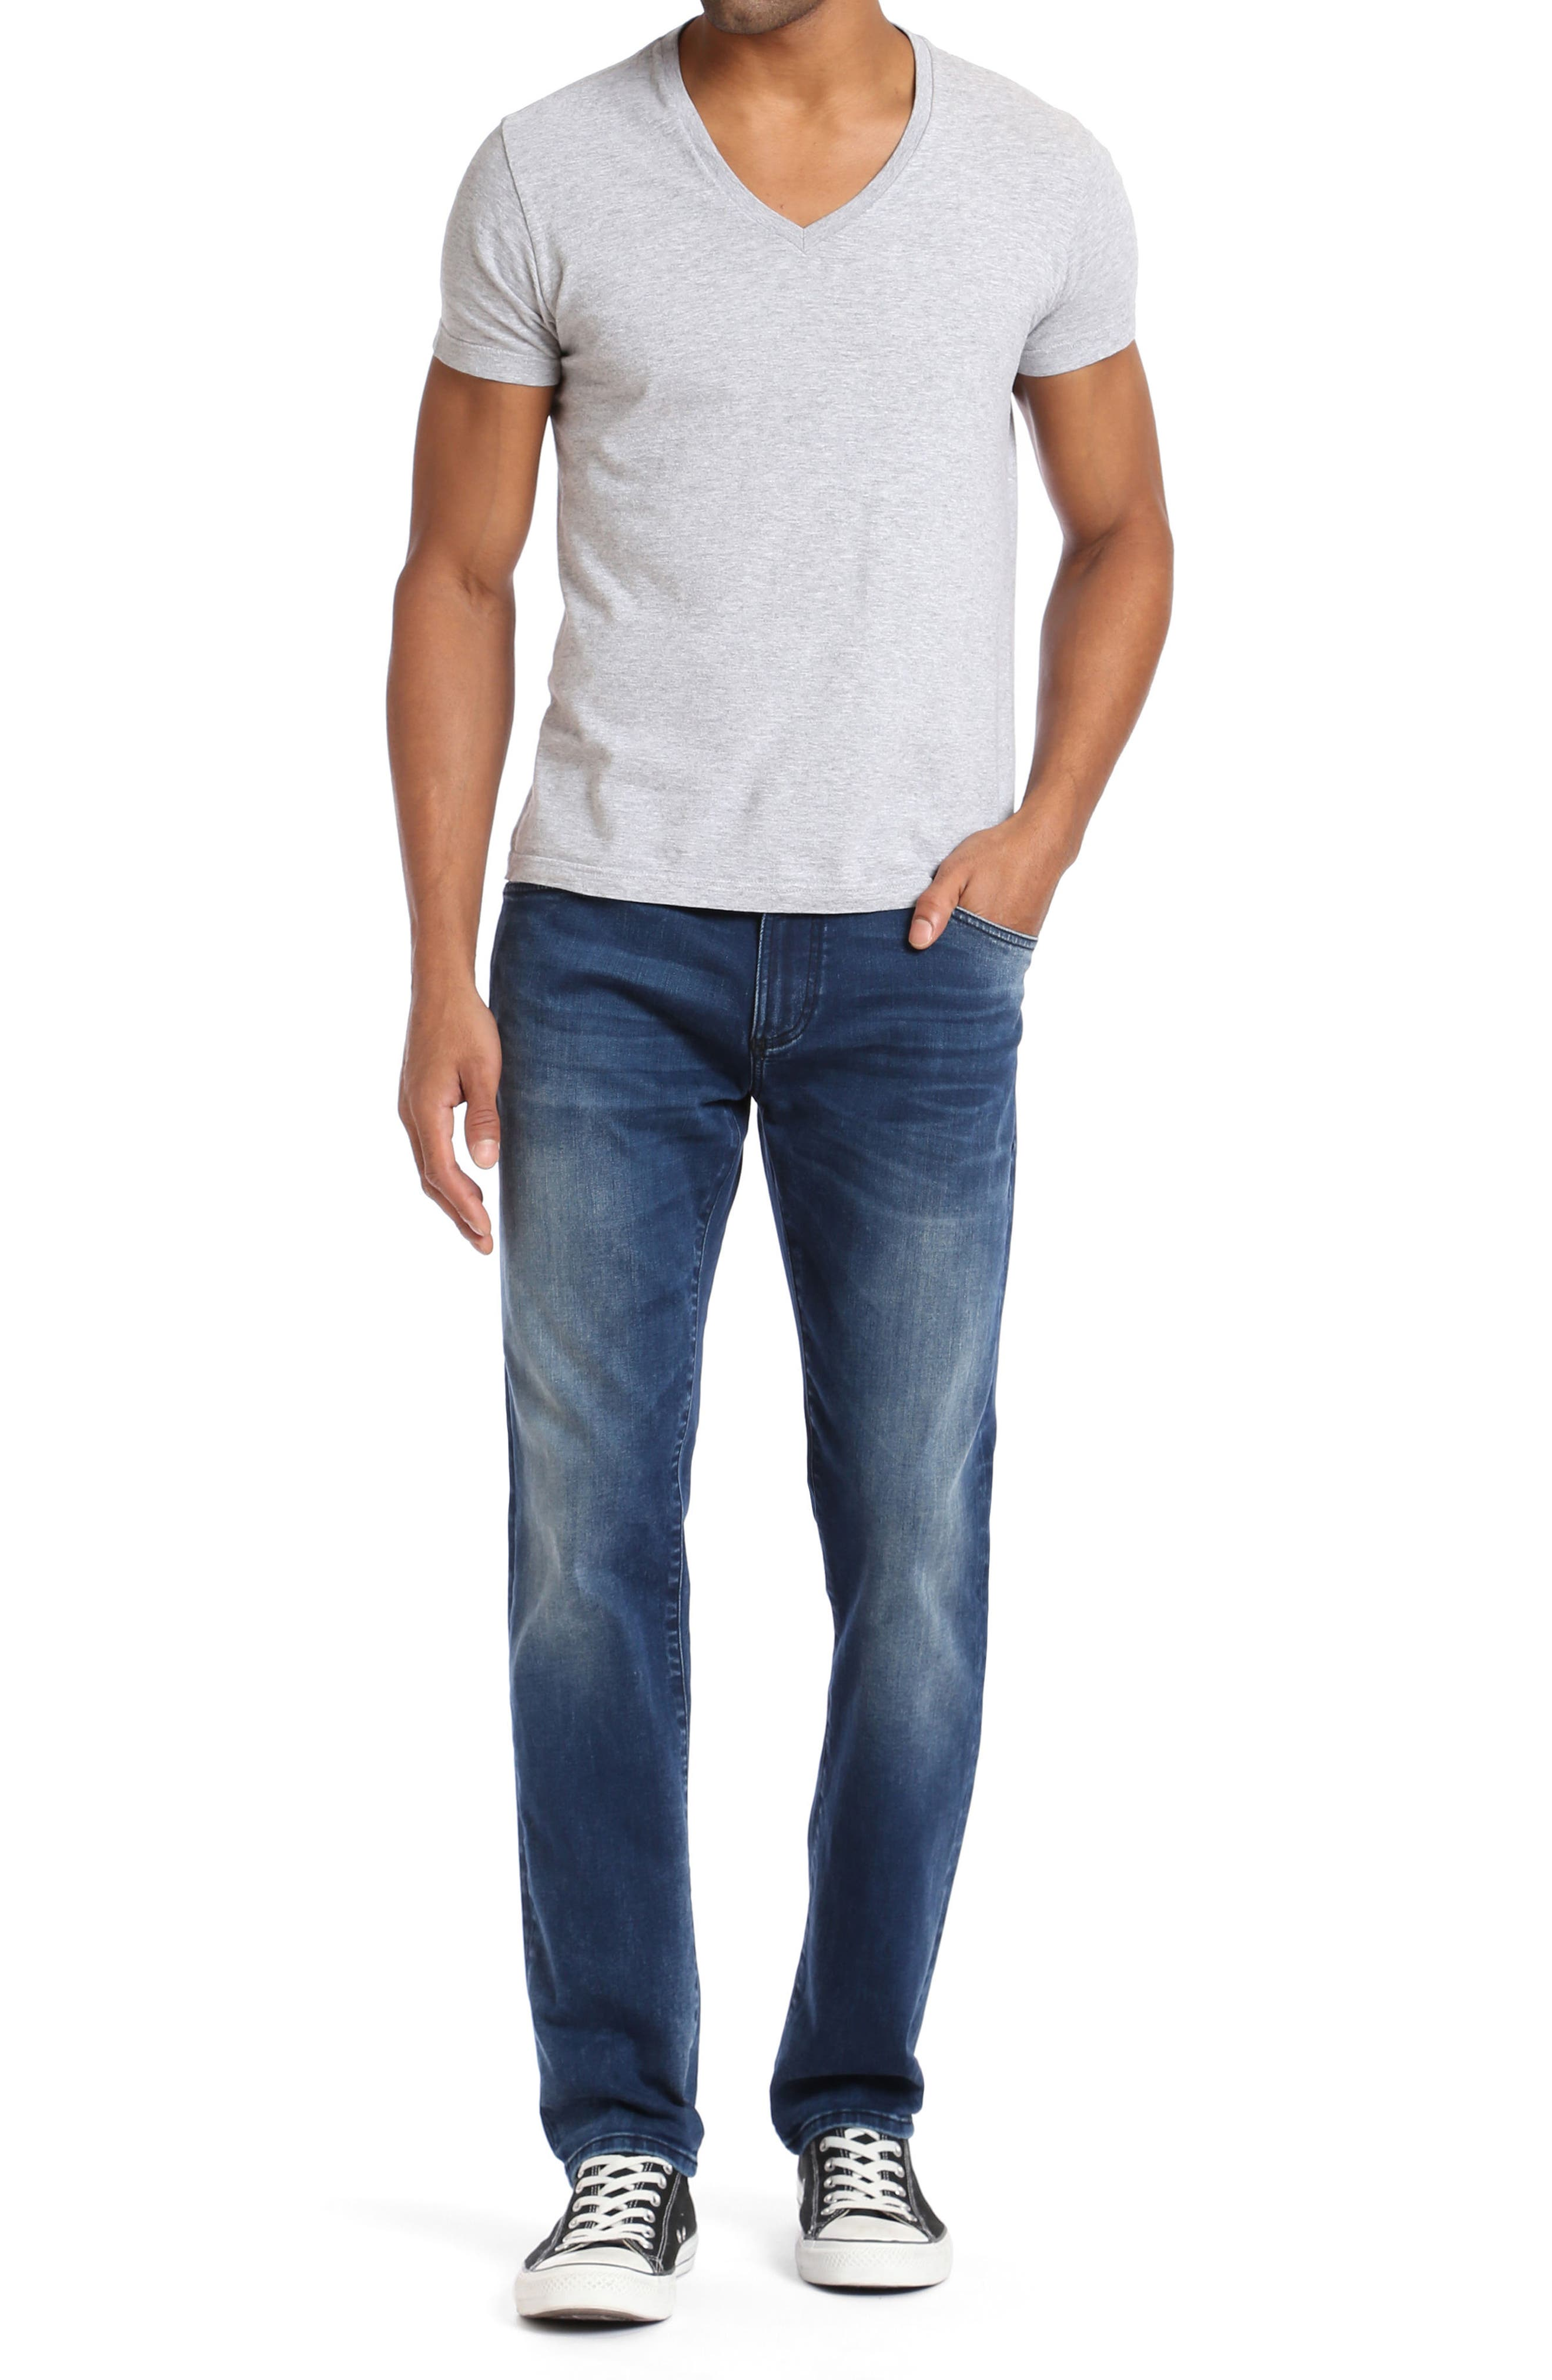 Marcus Slim Straight Leg Jeans,                             Alternate thumbnail 4, color,                             Forest Blue White Edge